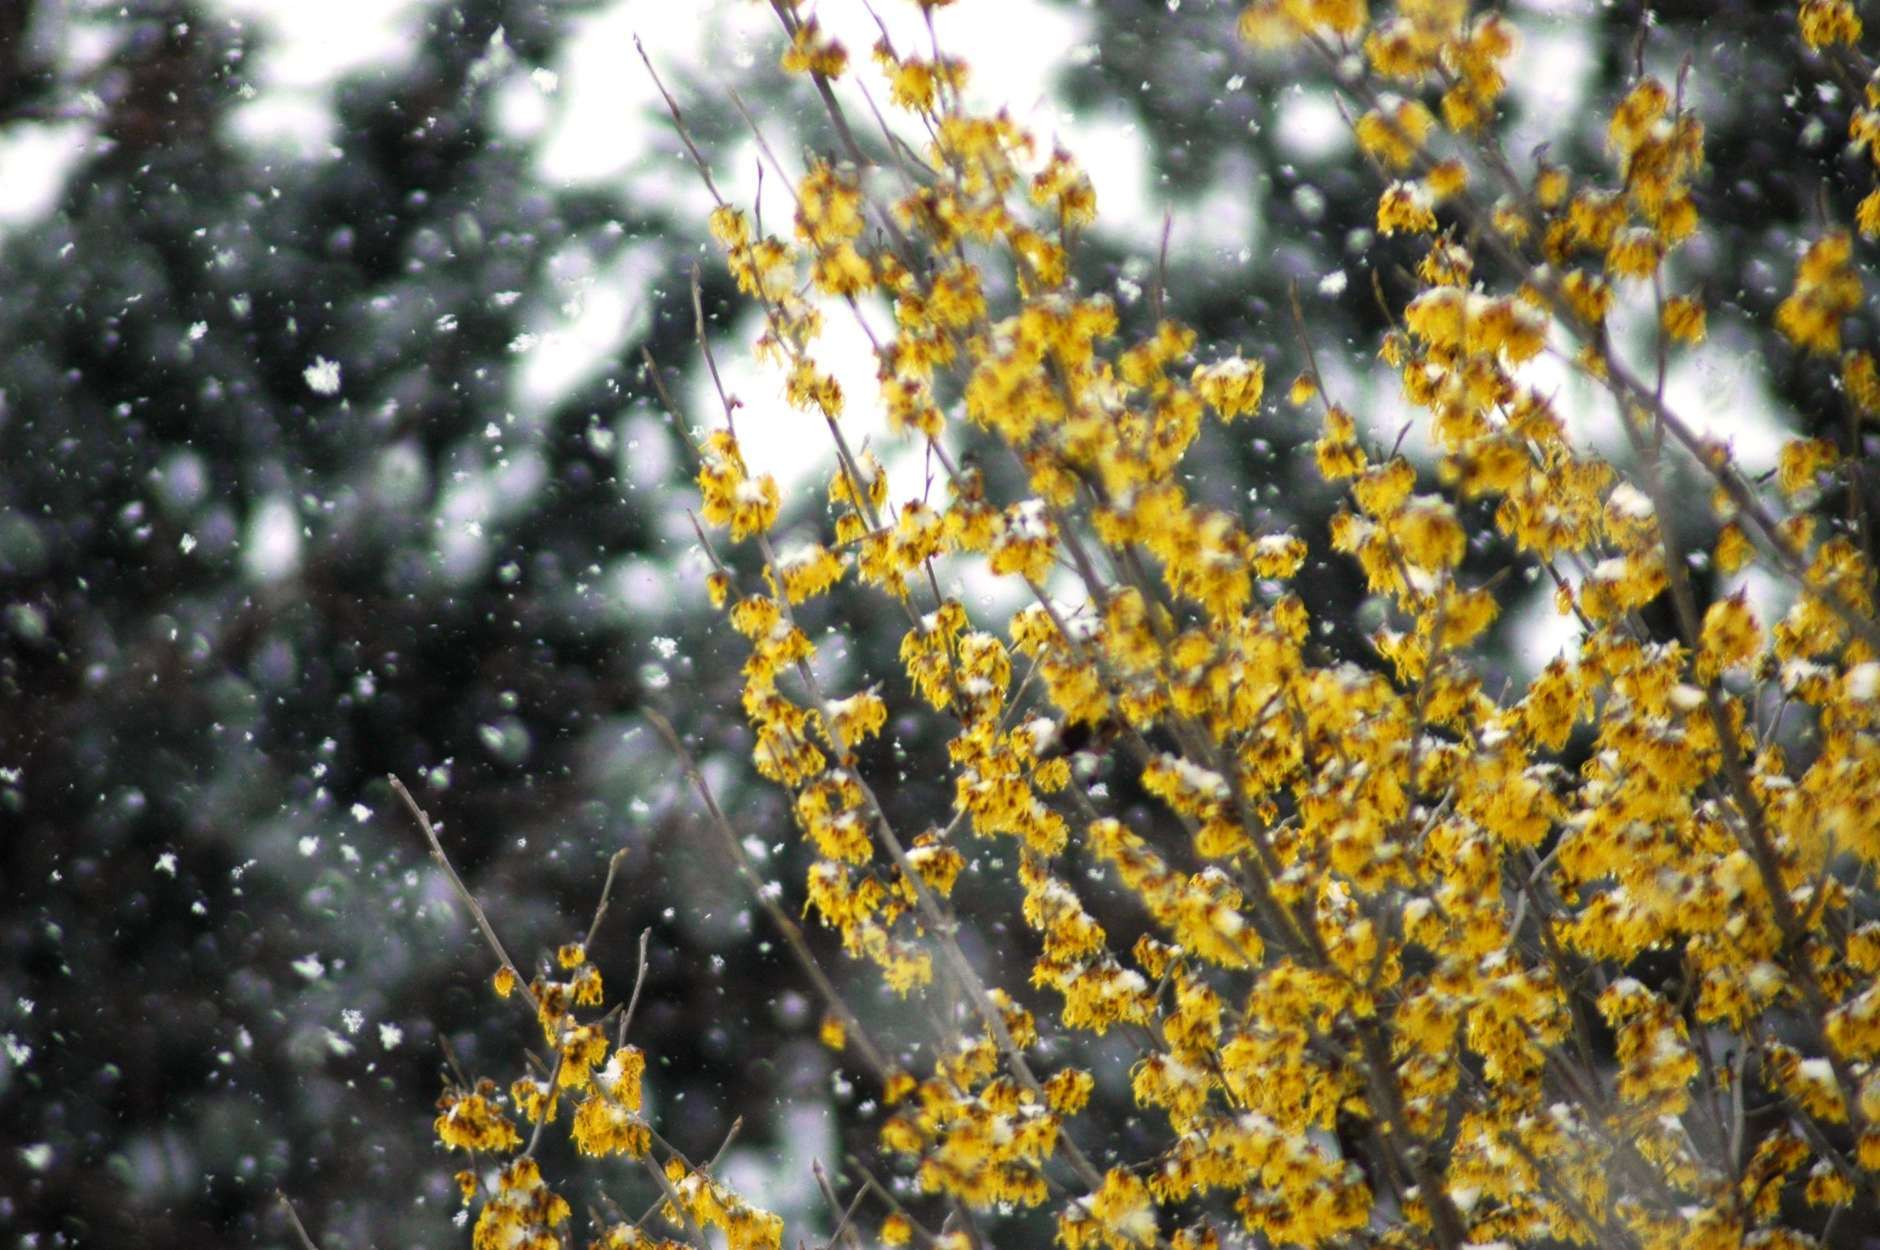 Snow falls on blooming forsythia shrubs during a snowstorm in early March 2014. (WTOP/Dave Dildine)